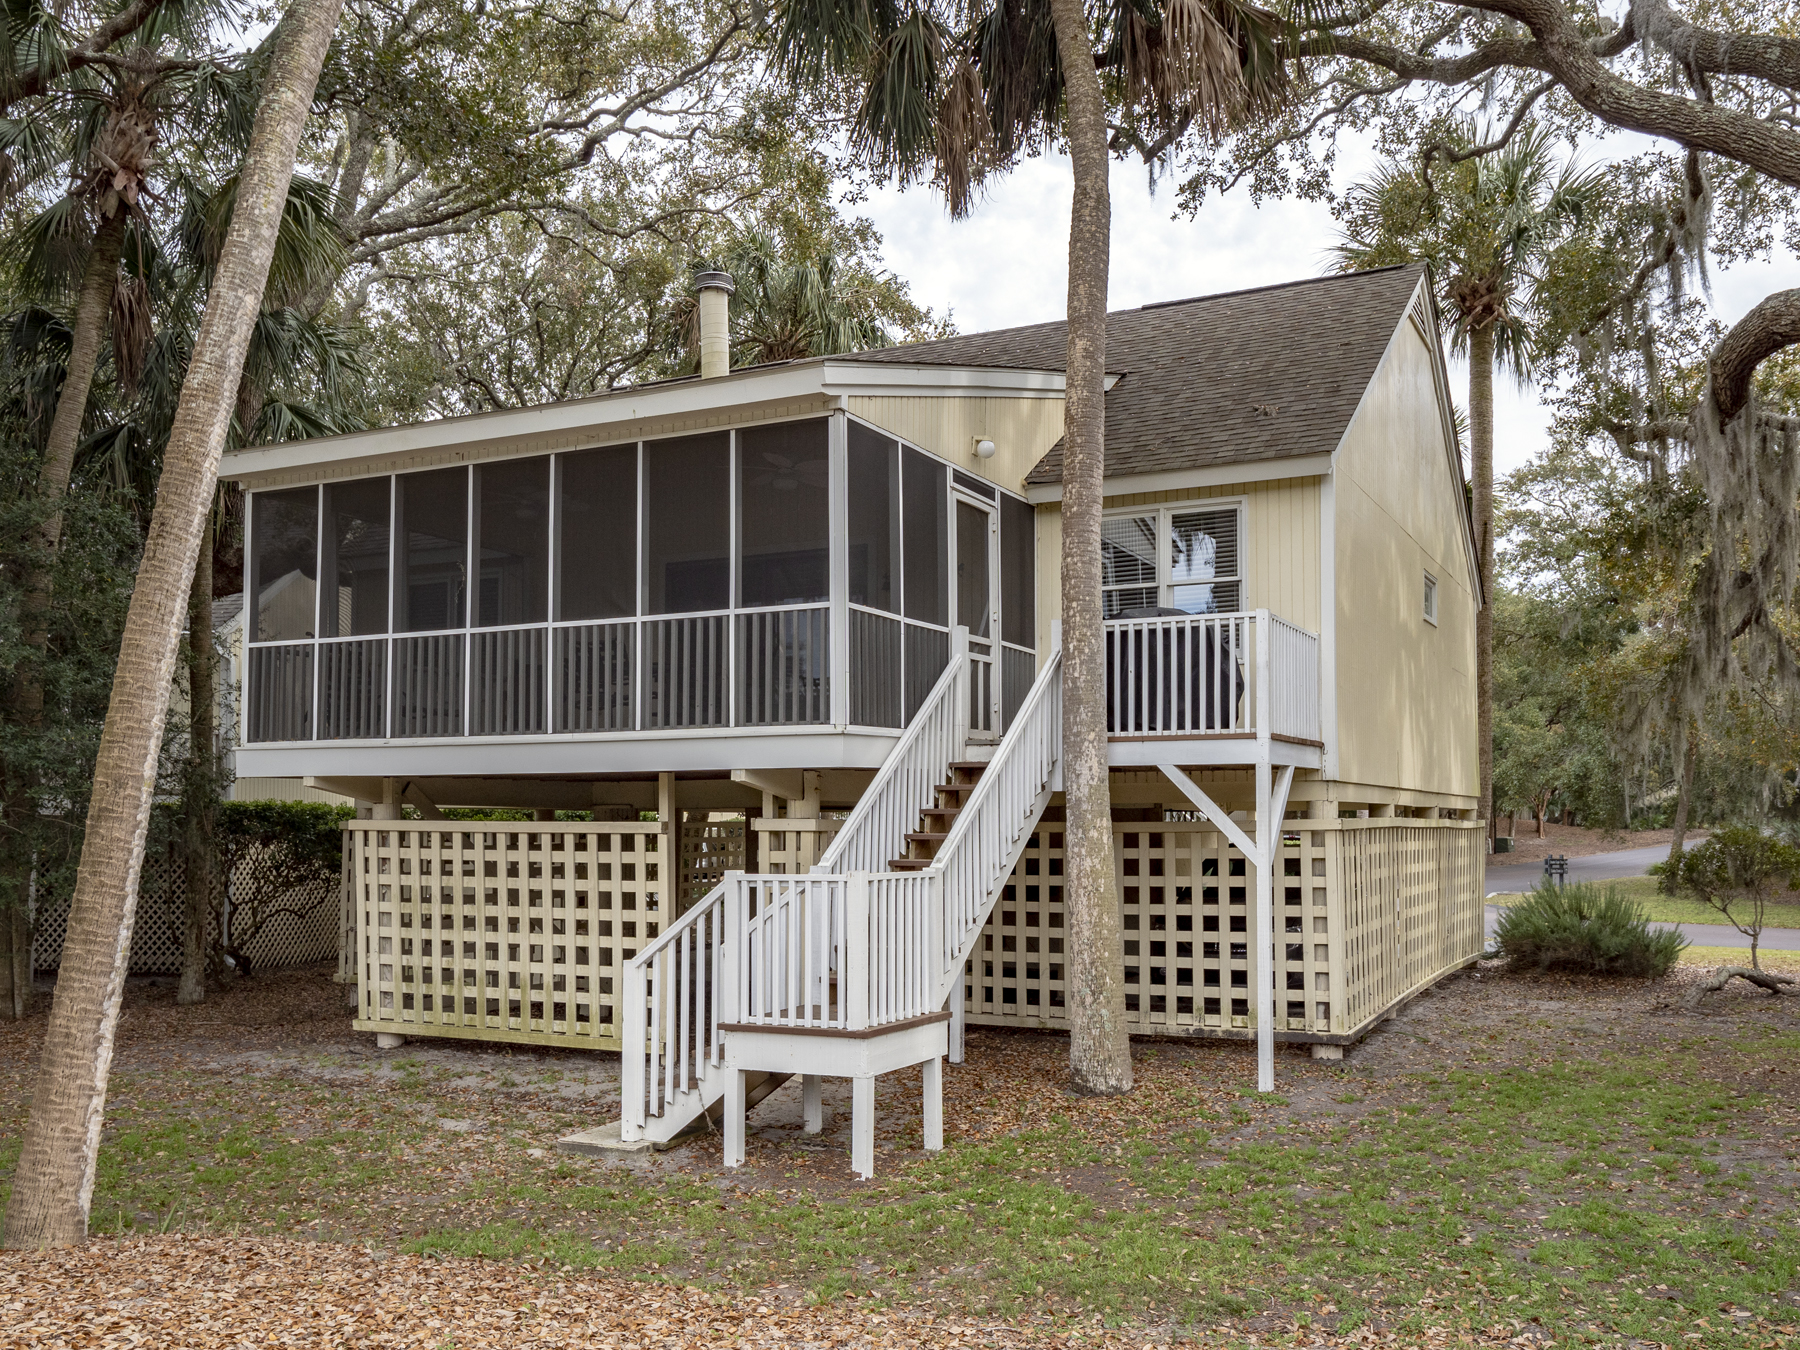 Enjoy the outdoor living space of the screened porch with views of Ocean Winds Golf Course